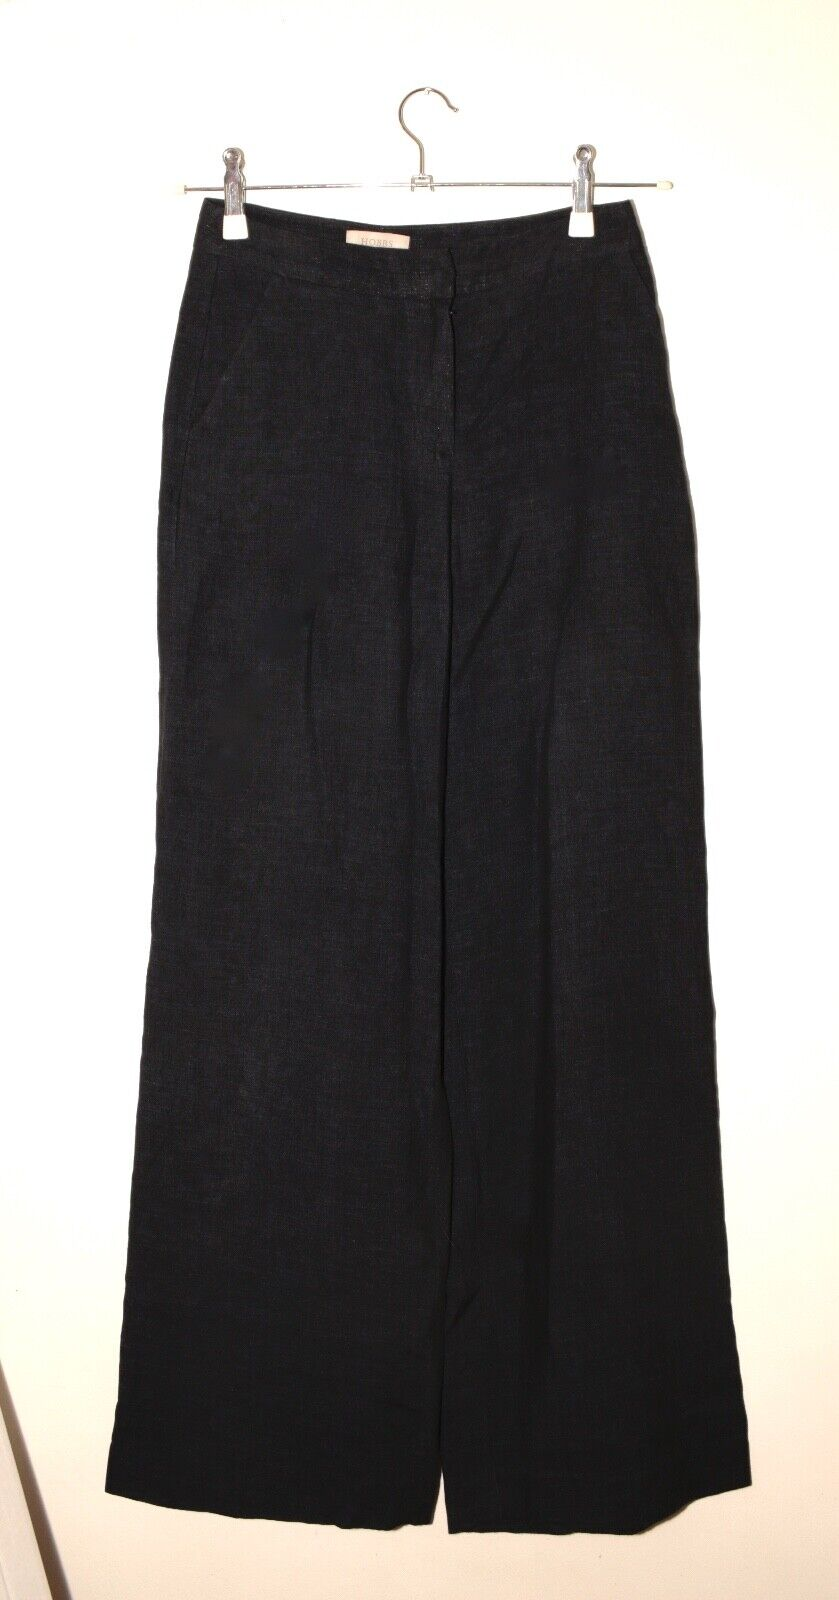 Hobbs navy linen wide leg trousers Größe UK8 EU36